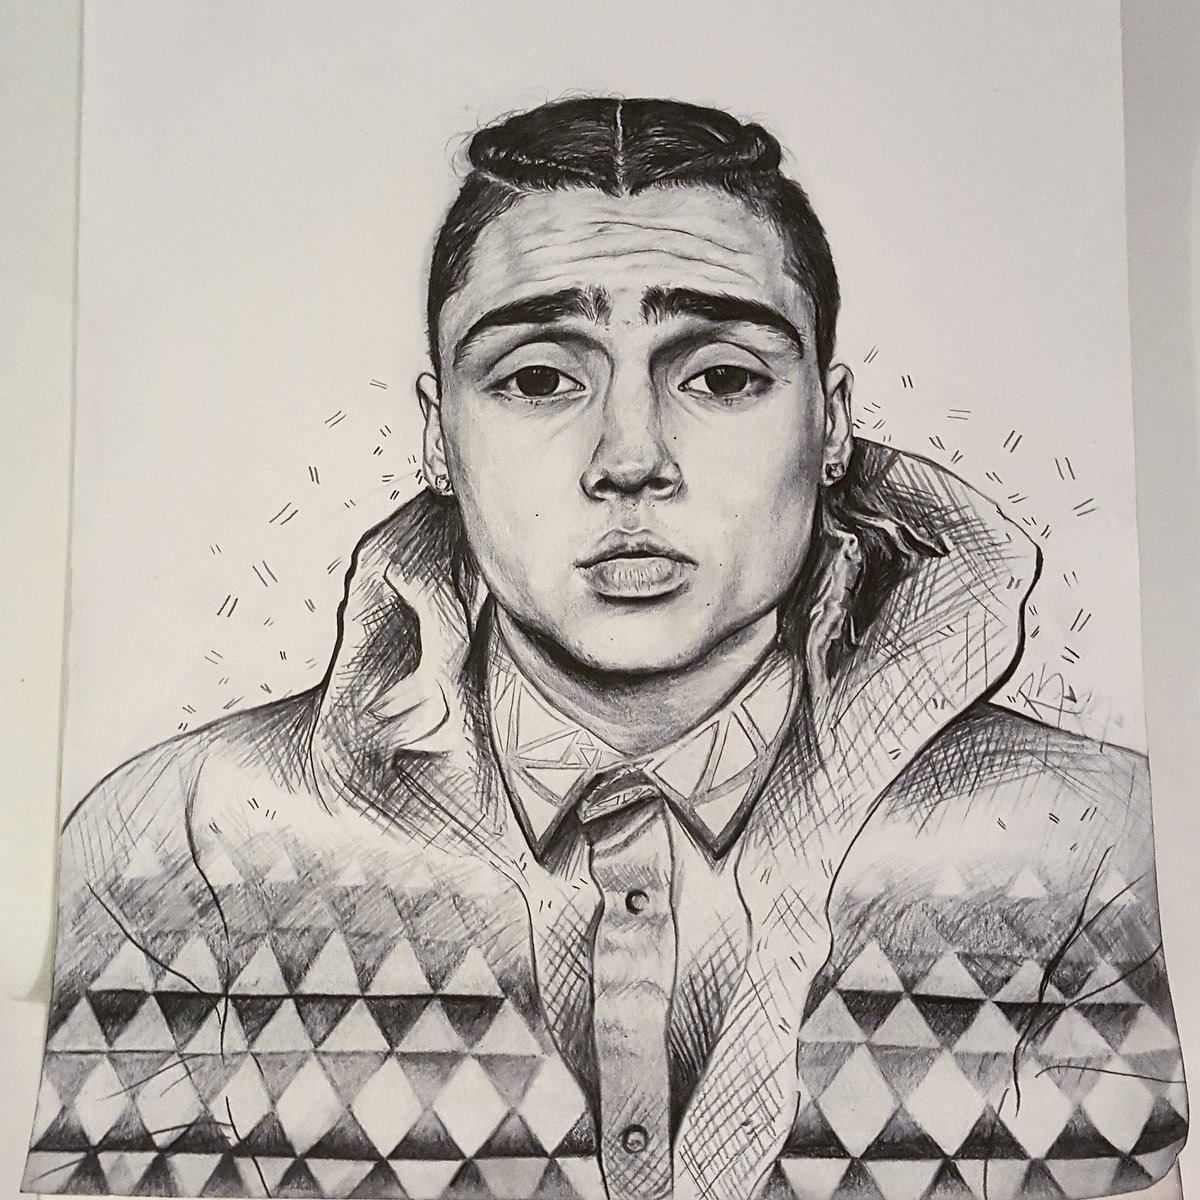 christina lorre on twitter my drawing of quincy art artwork